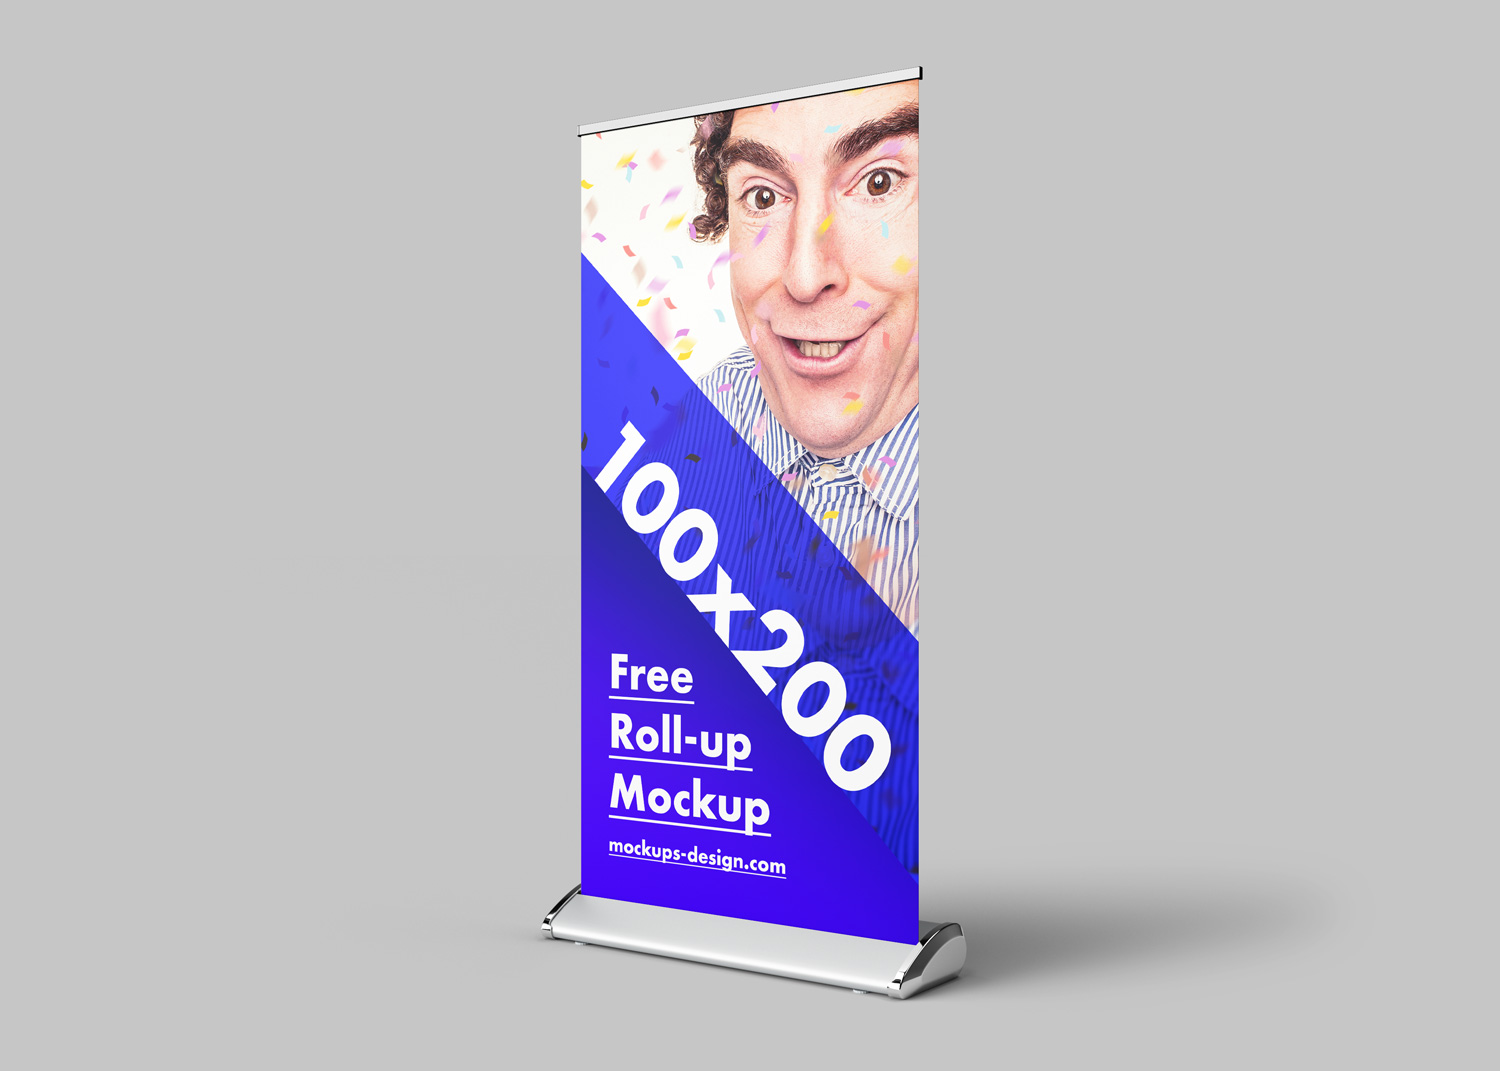 Free-Roll-Up-Mockup-03